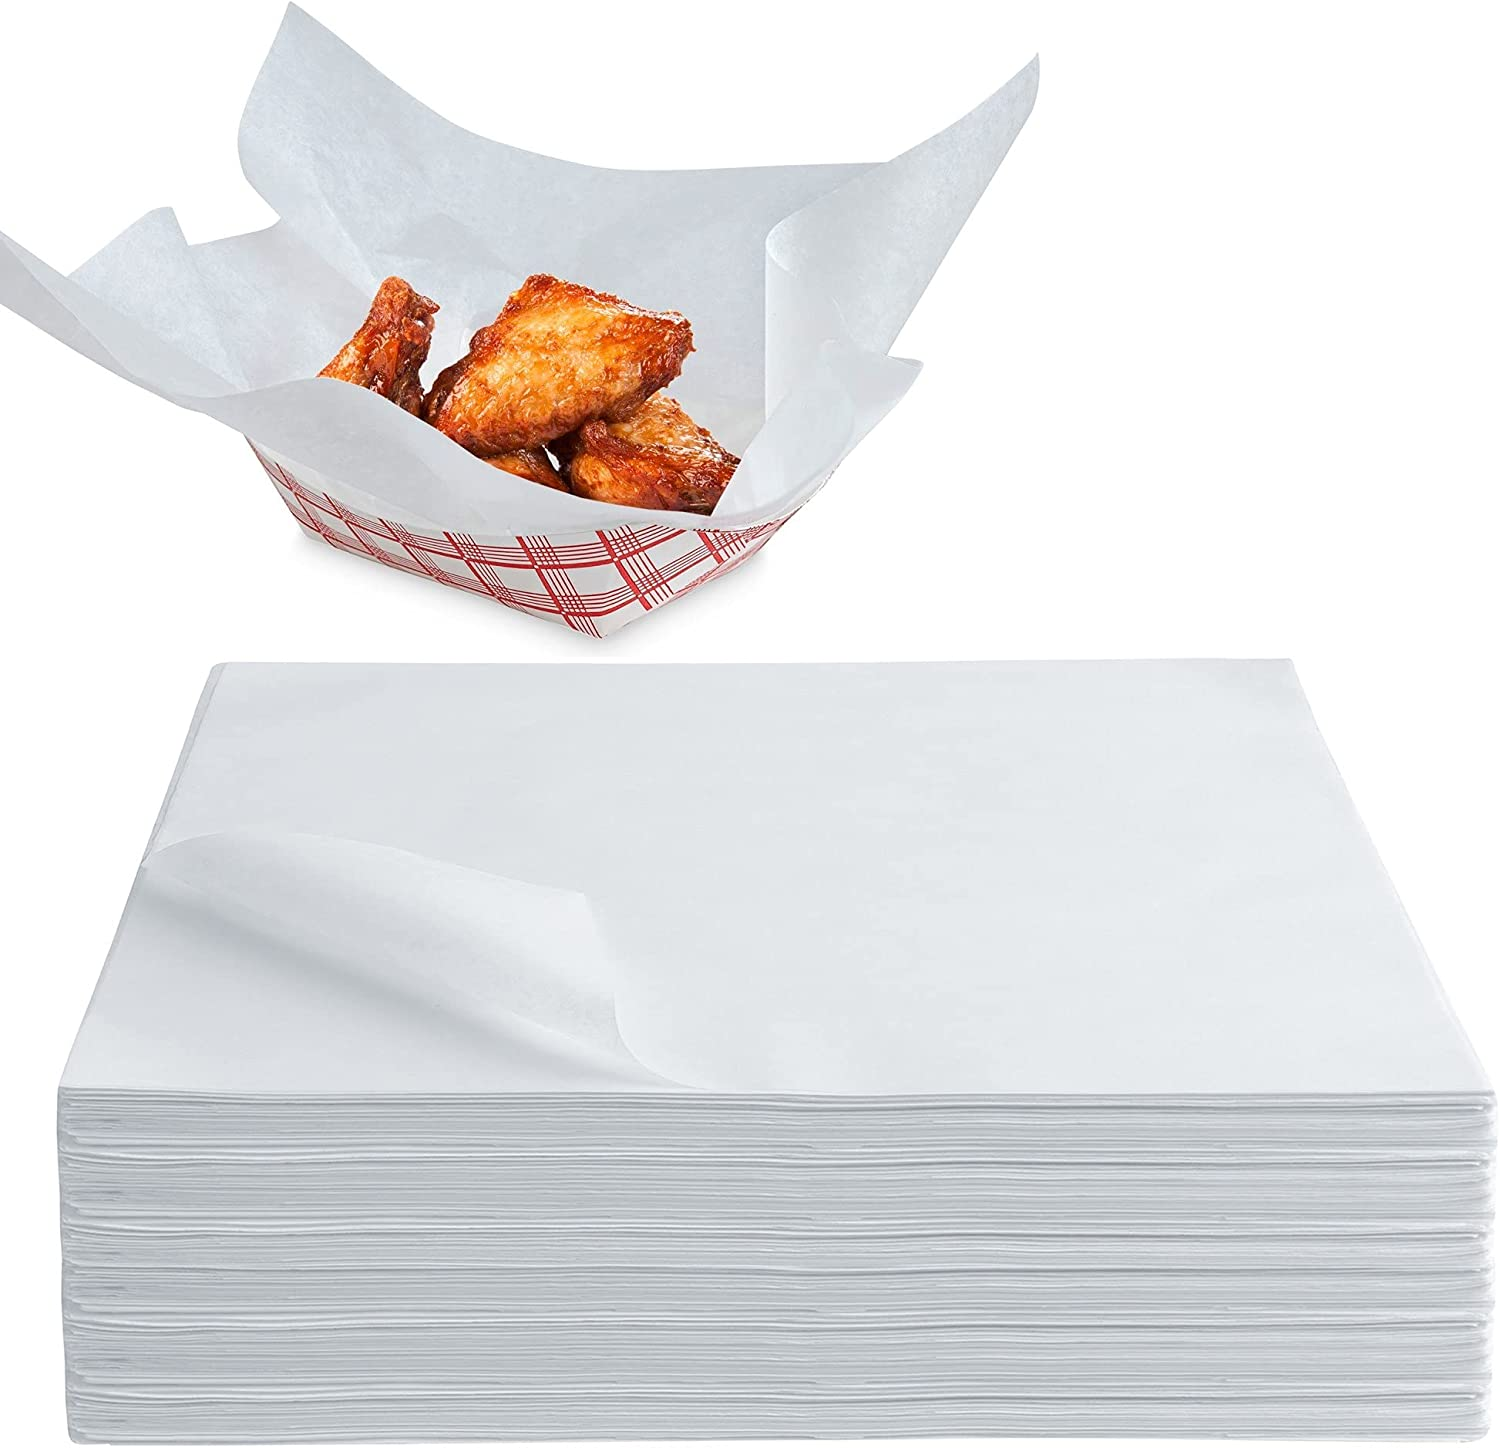 Stock Your Home 12 x 12 Grease Proof Deli Wrapper (500 Pack) - Pre Cut Natural Wax Paper Sheets - Recyclable Food Basket Liners - White Deli Papers For Sandwiches, Lining Wire Food Baskets, Food Trays